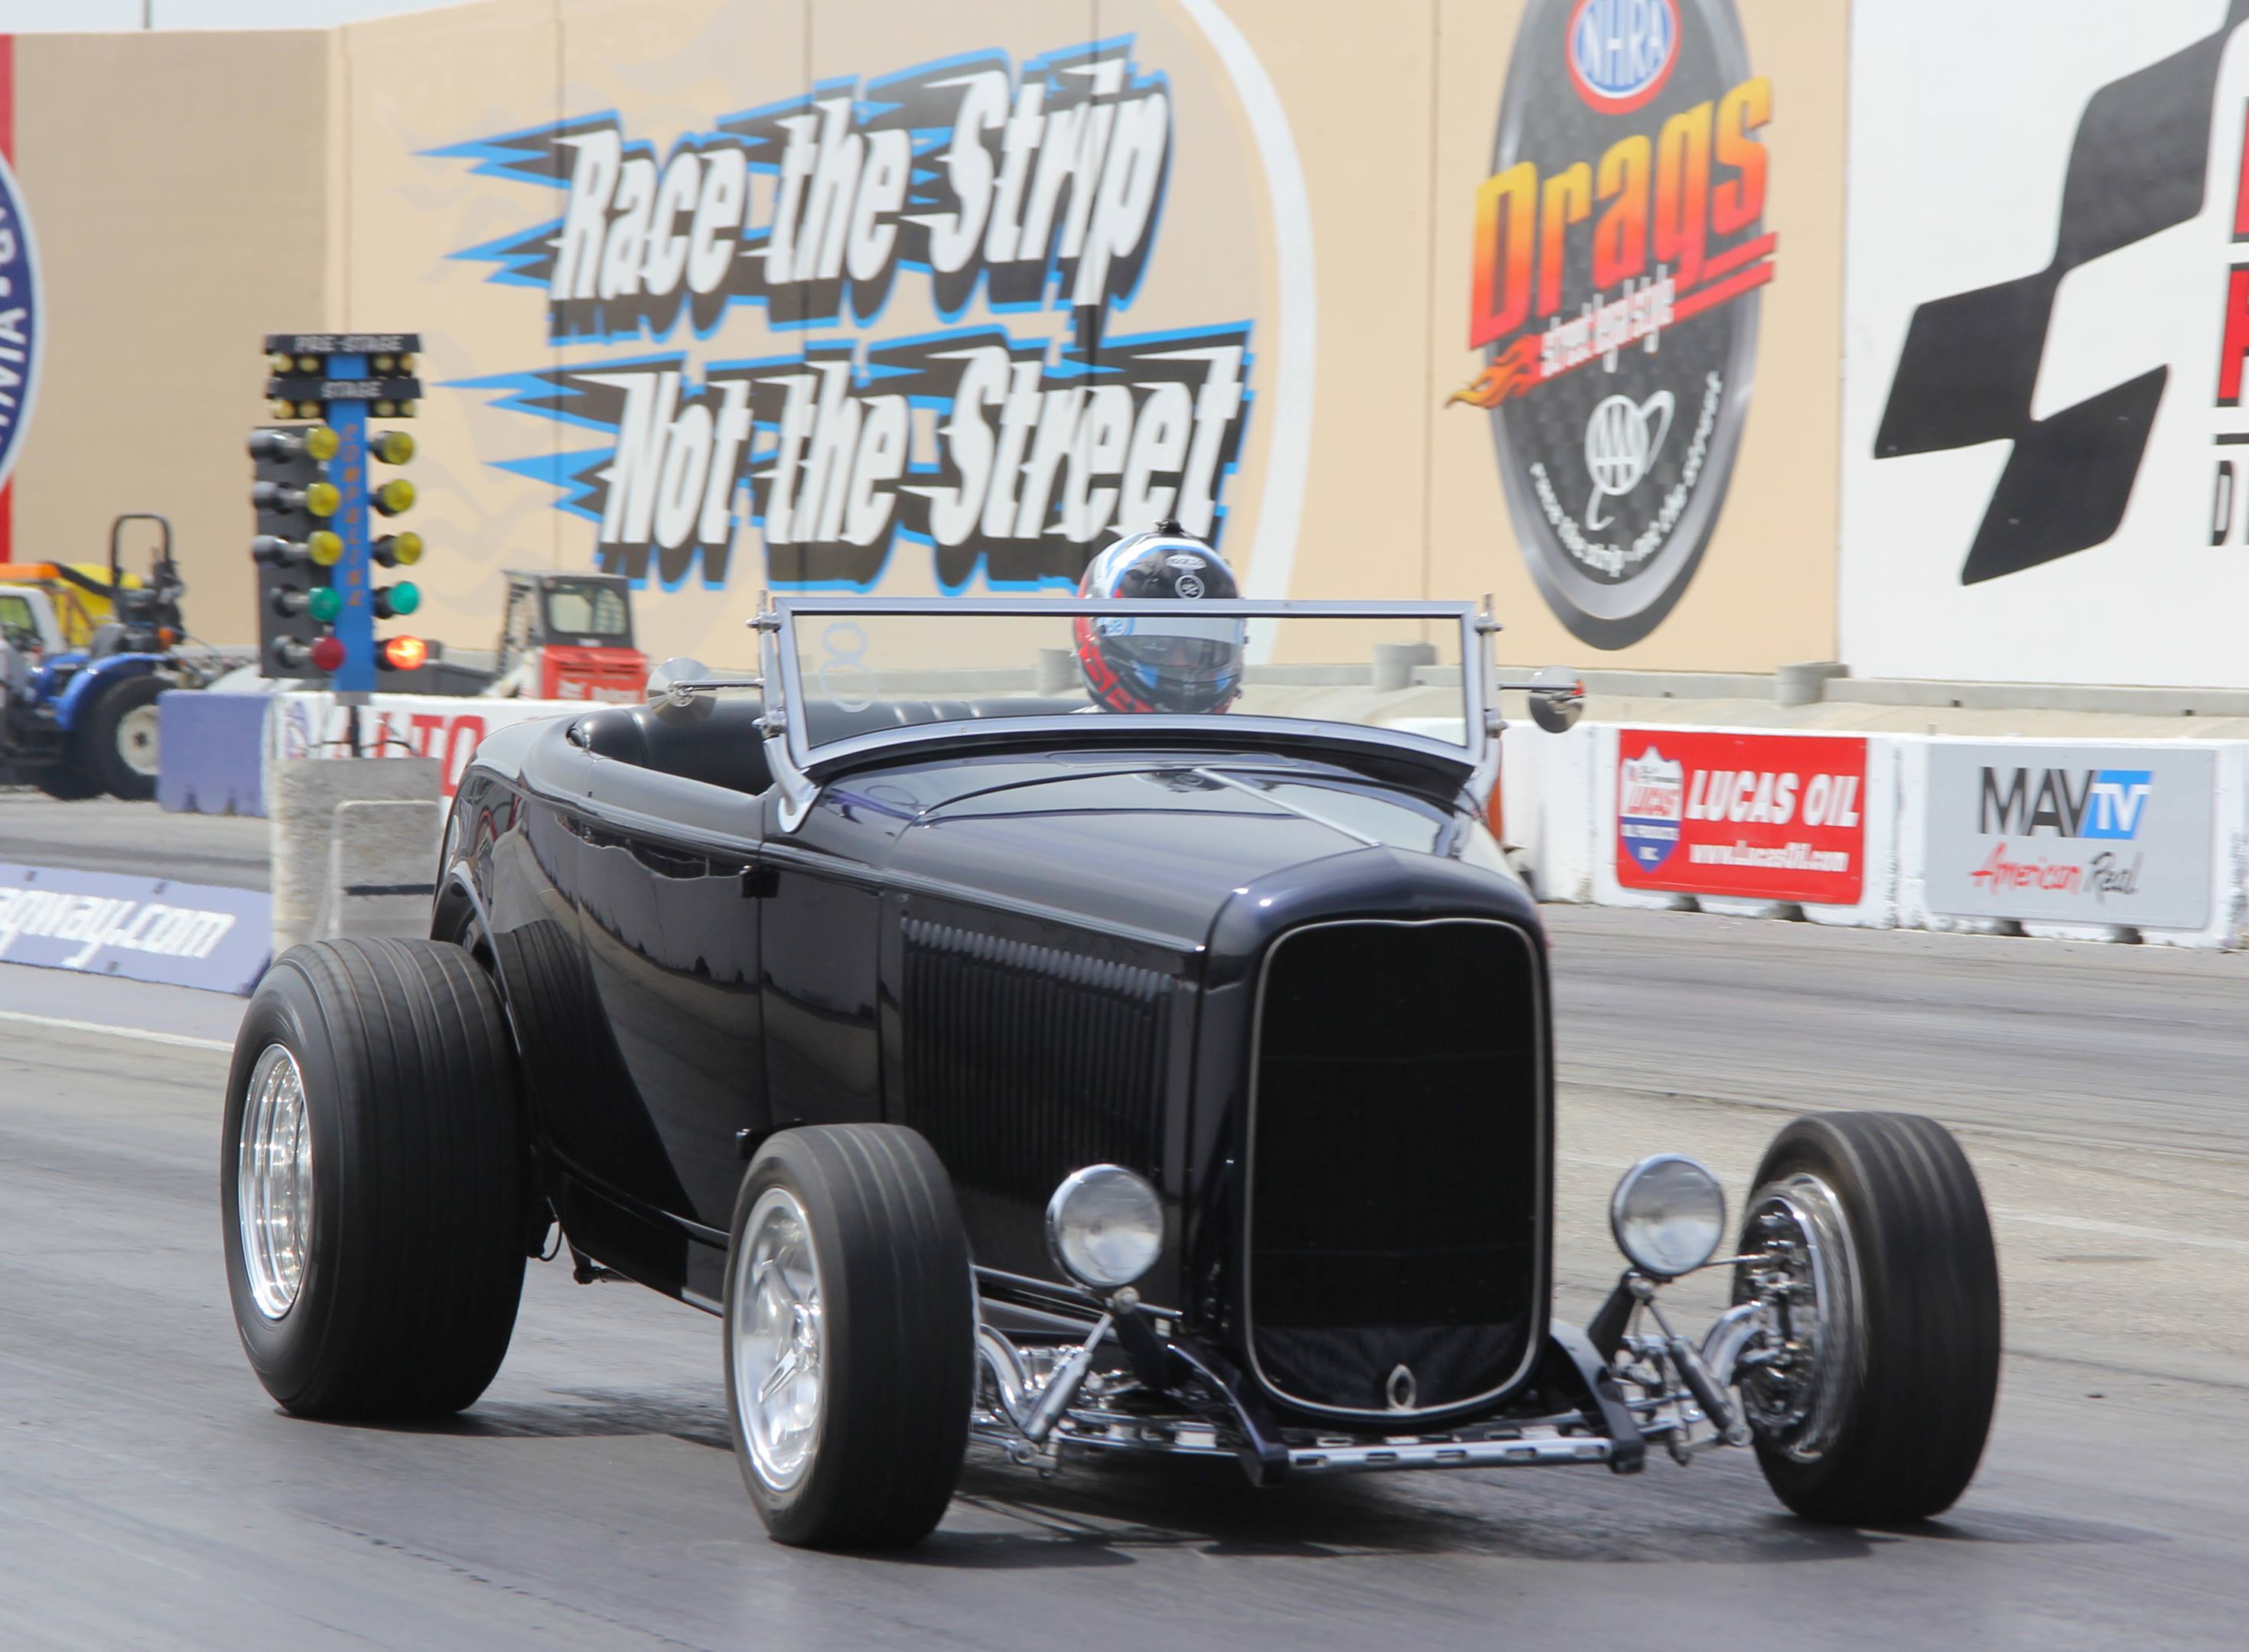 1932 Ford Deuce at the dragstrip